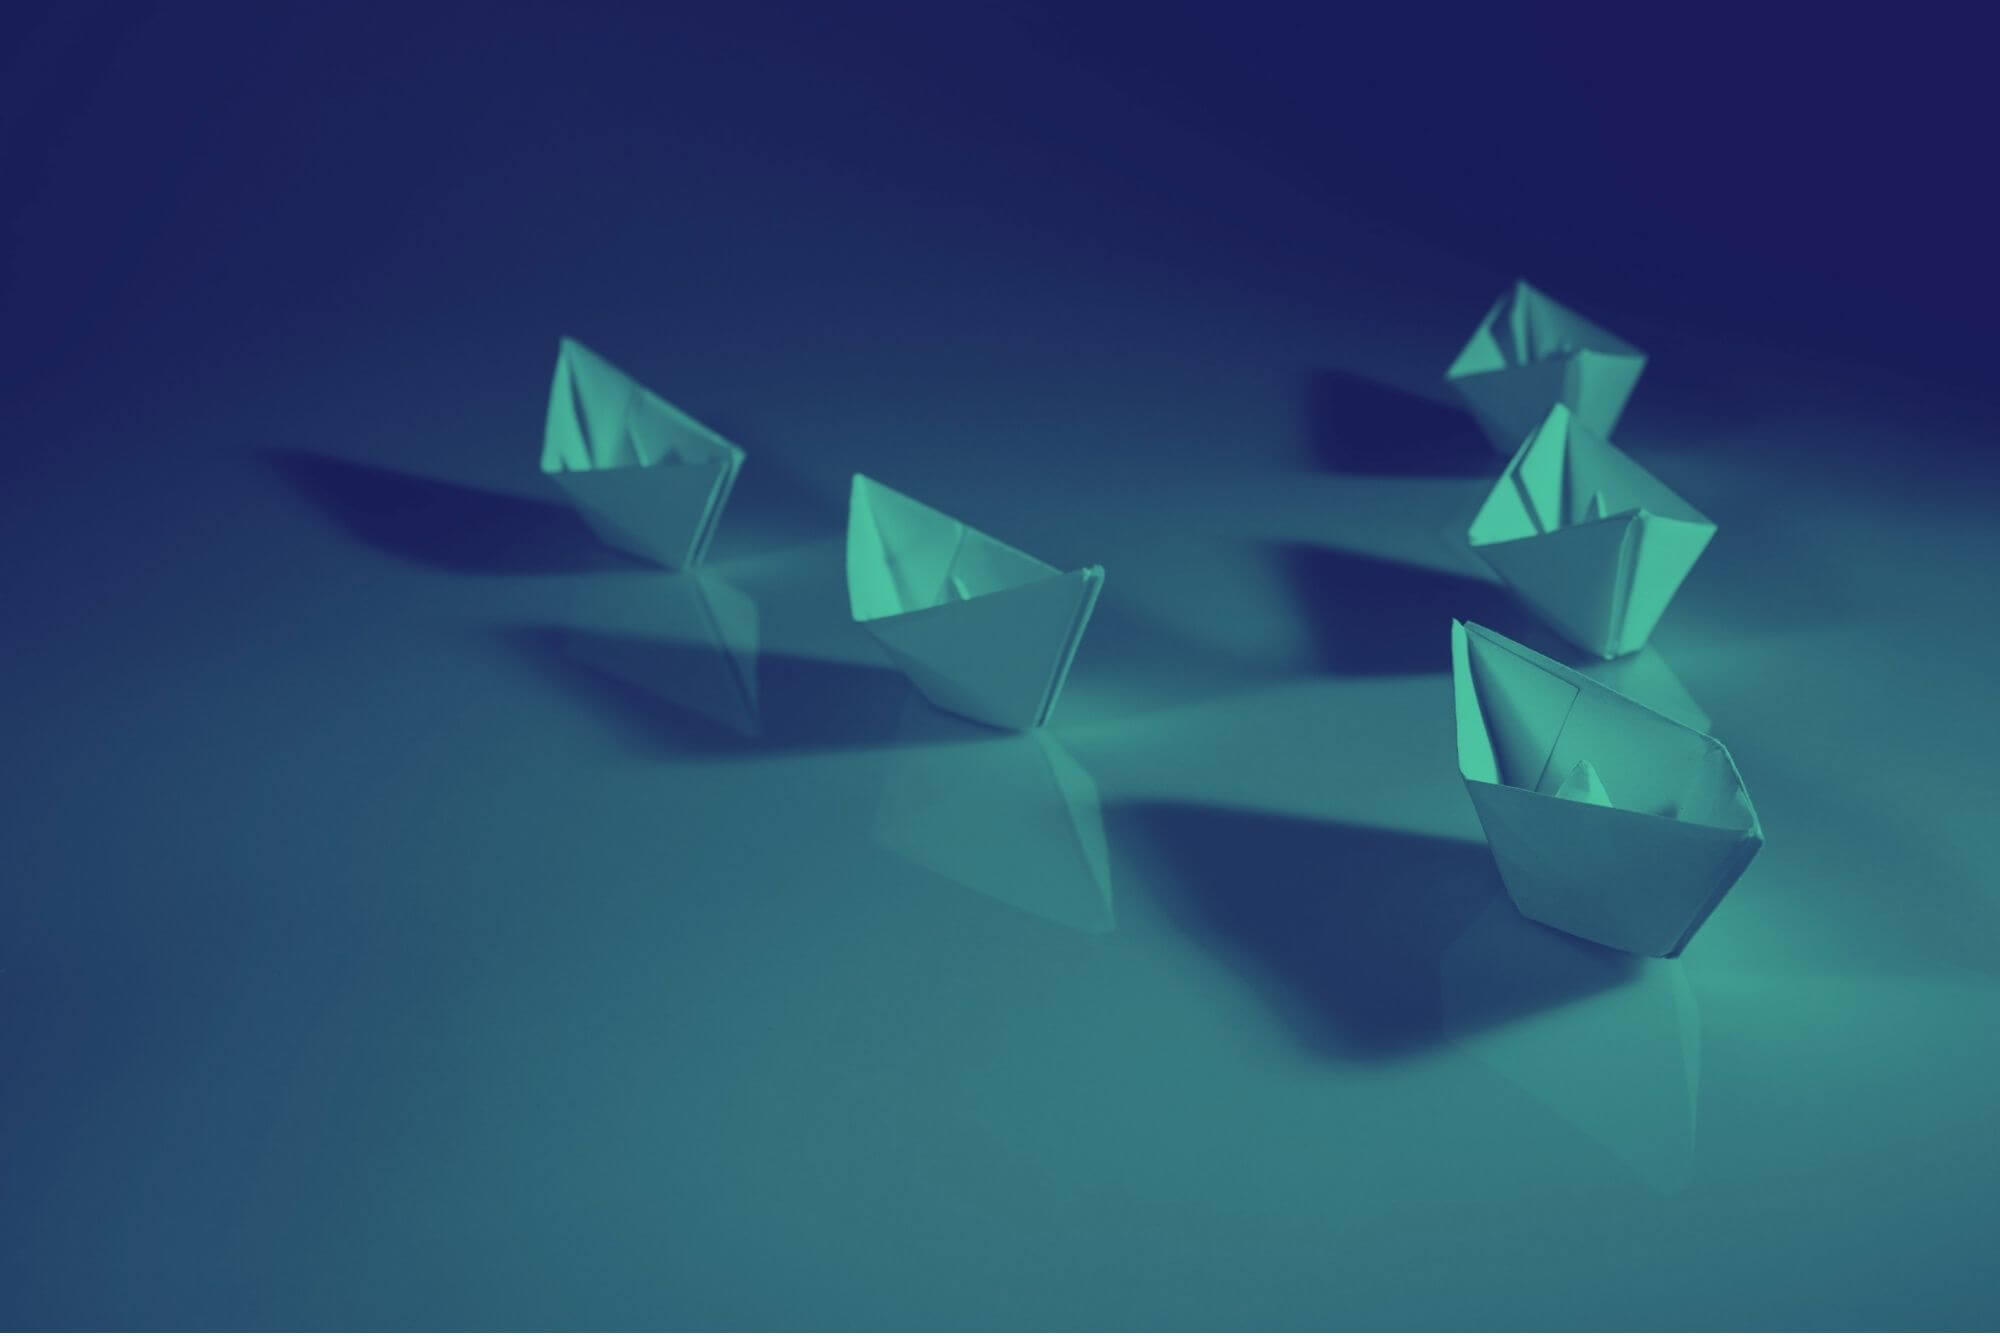 Why is leadership important? The crucial ways leaders shape a company